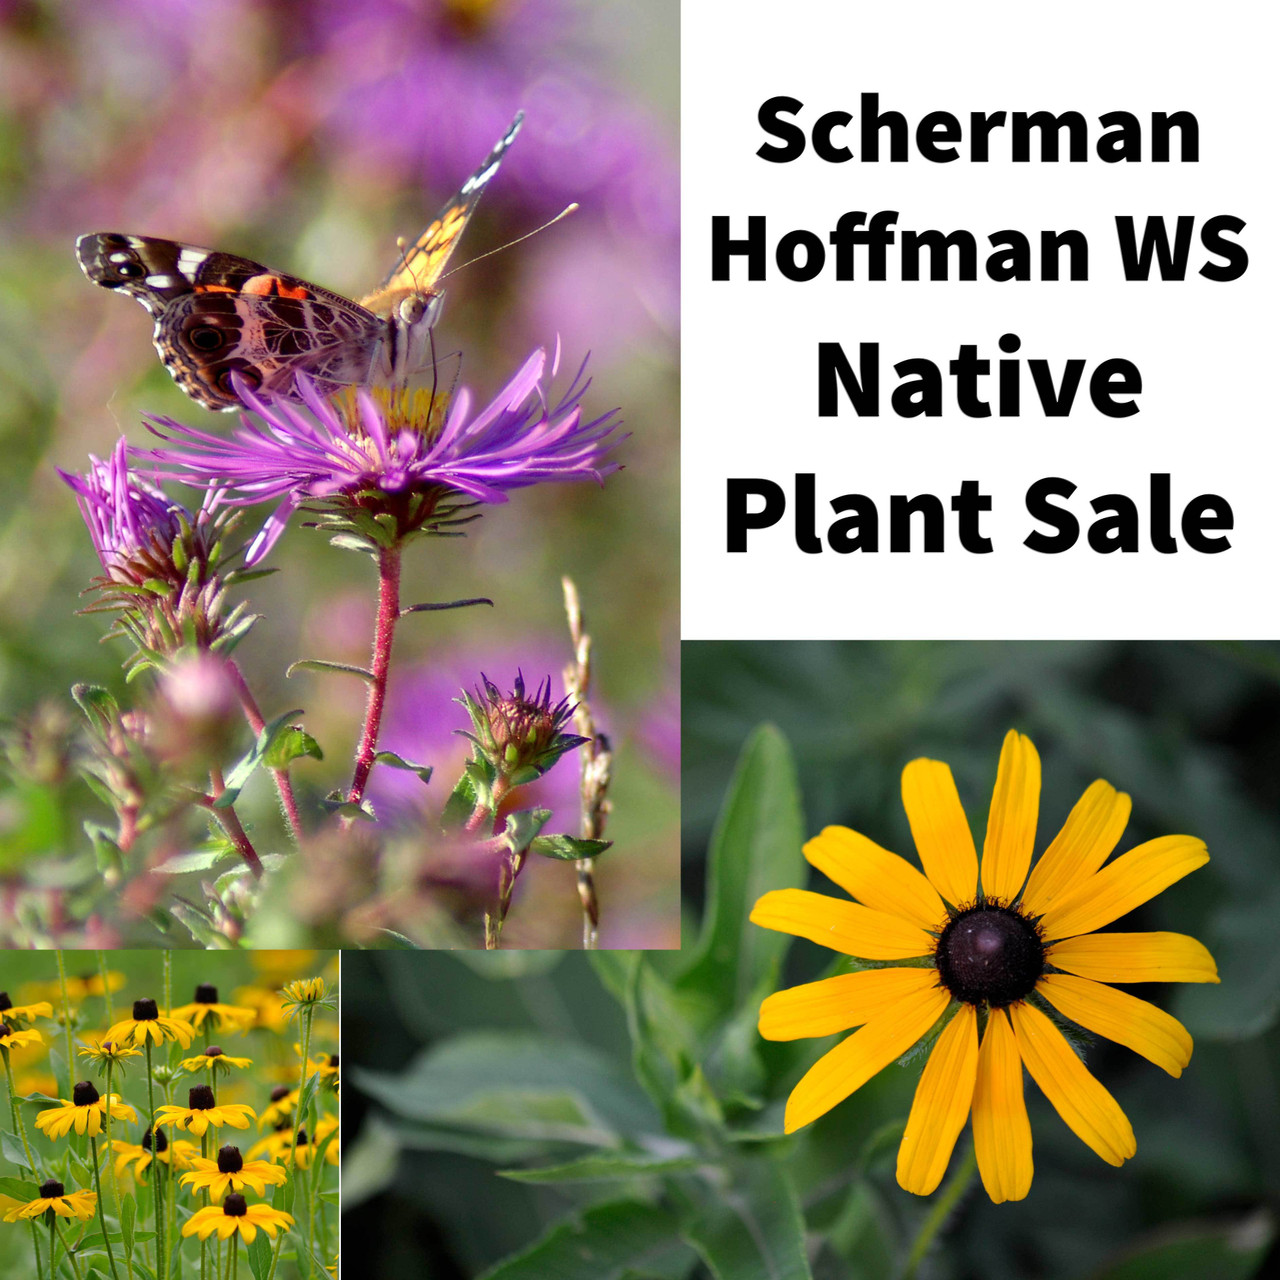 Scherman Hoffman Wildlife Sanctuary